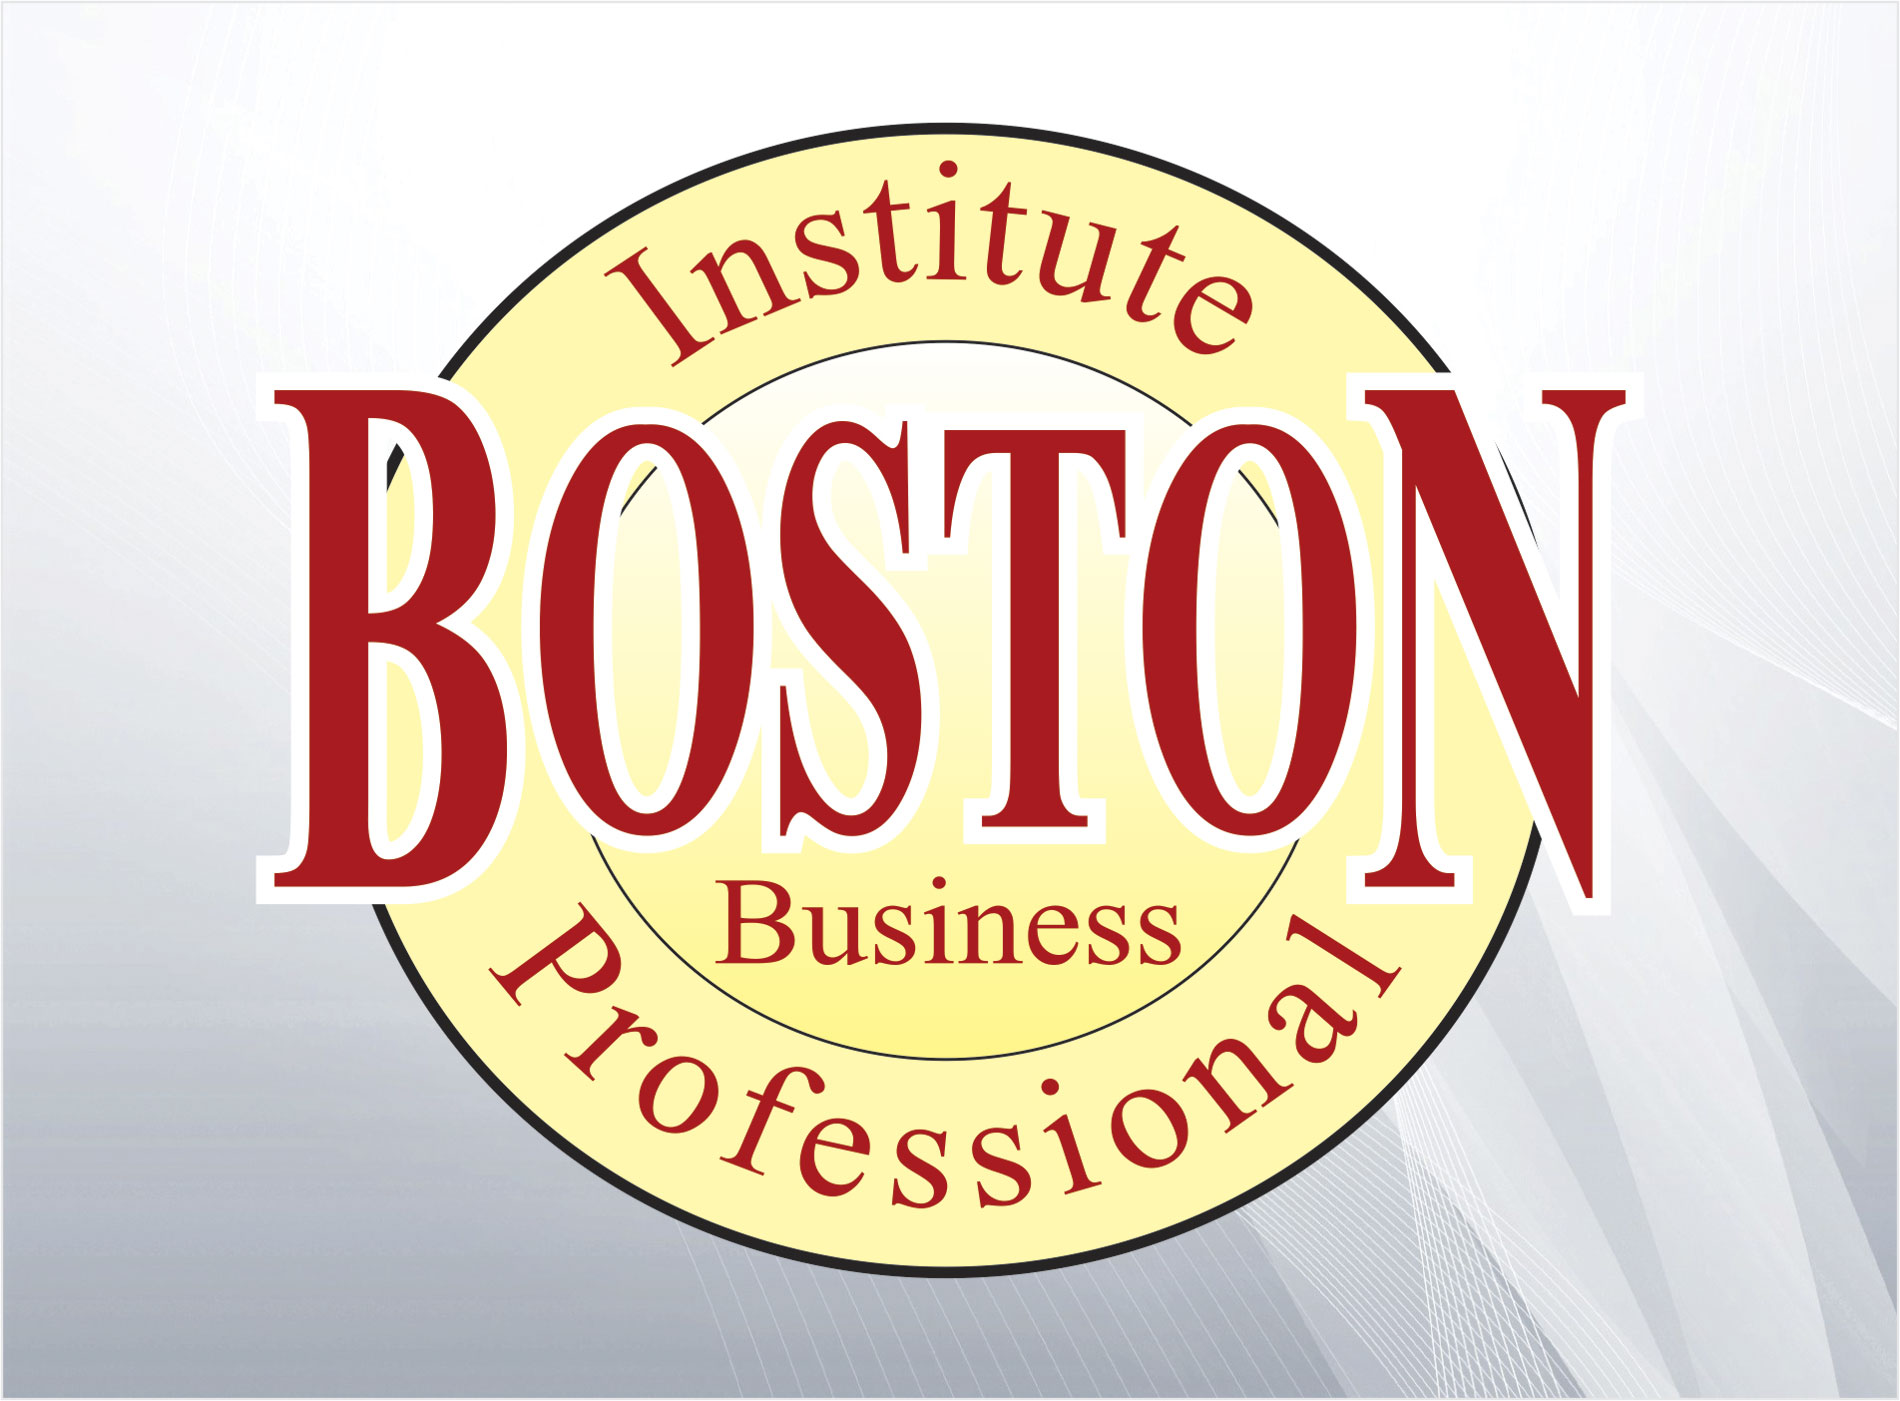 imagen_corporativa_boston_institute_ggcm